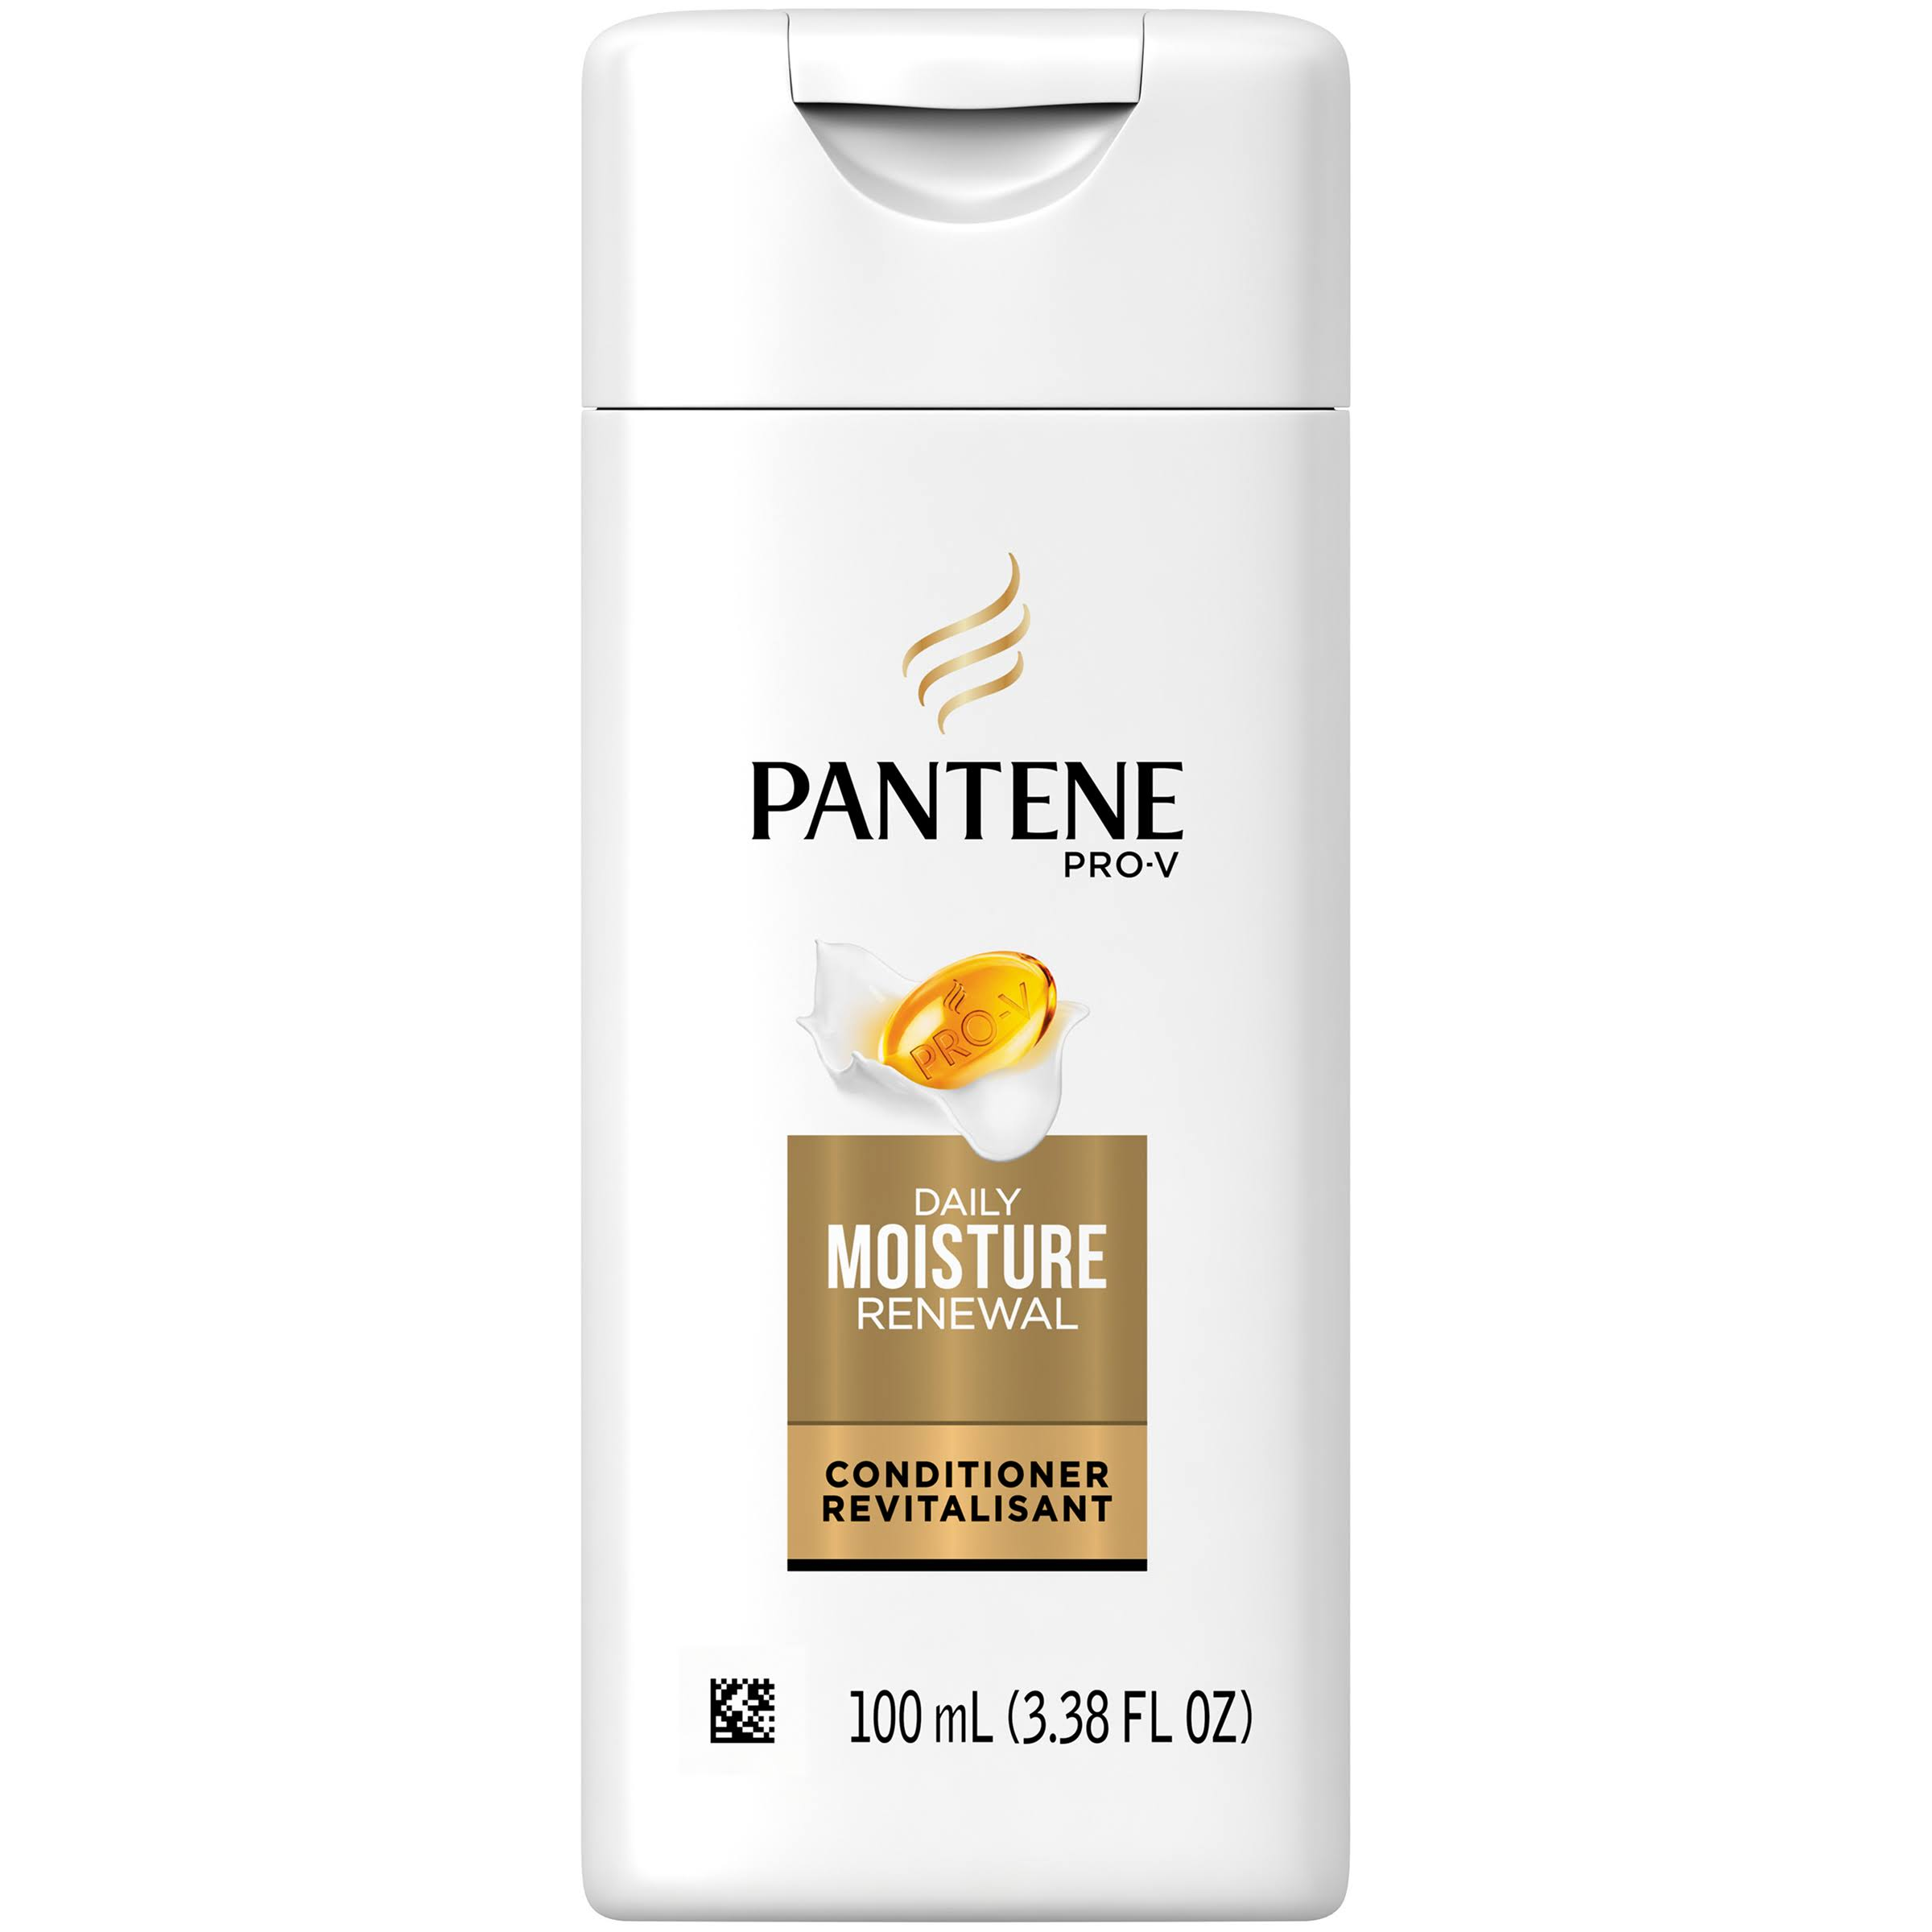 Pantene Pro-V Daily Moisture Renewal Hydrating Conditioner - 3.38oz